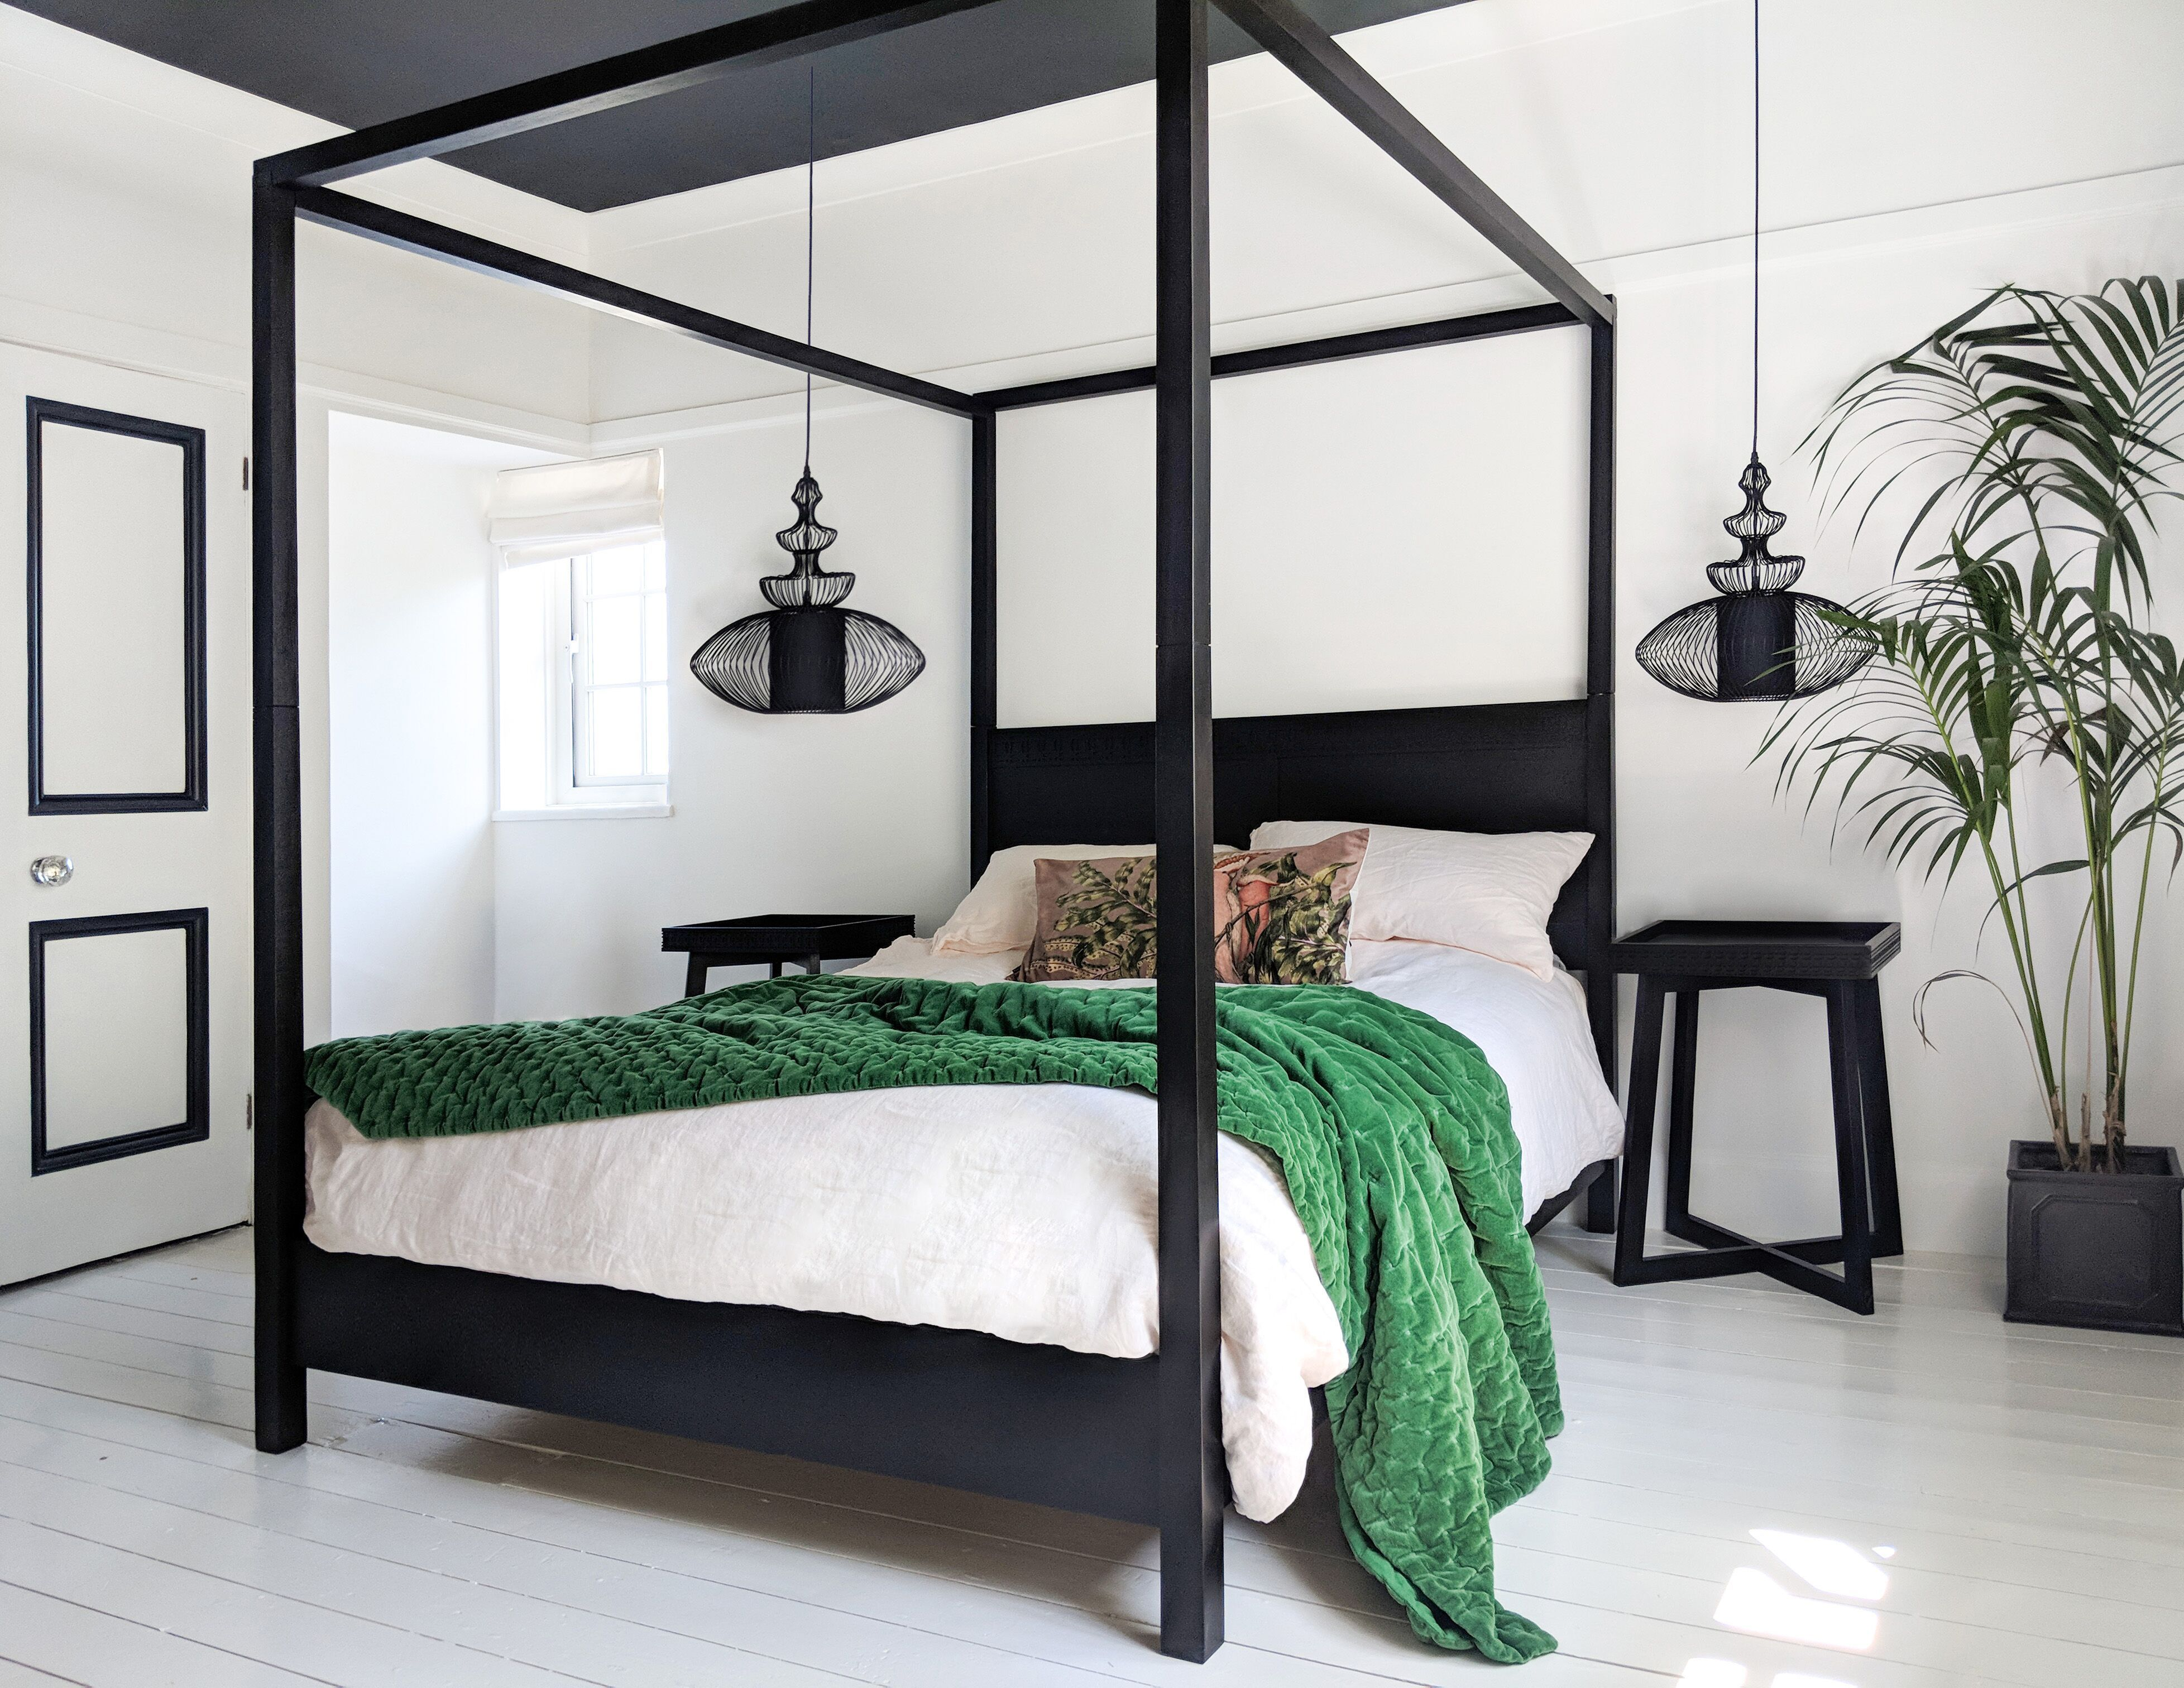 The Hedonist Black 4 Poster Bed In 2020 Black Canopy Beds 4